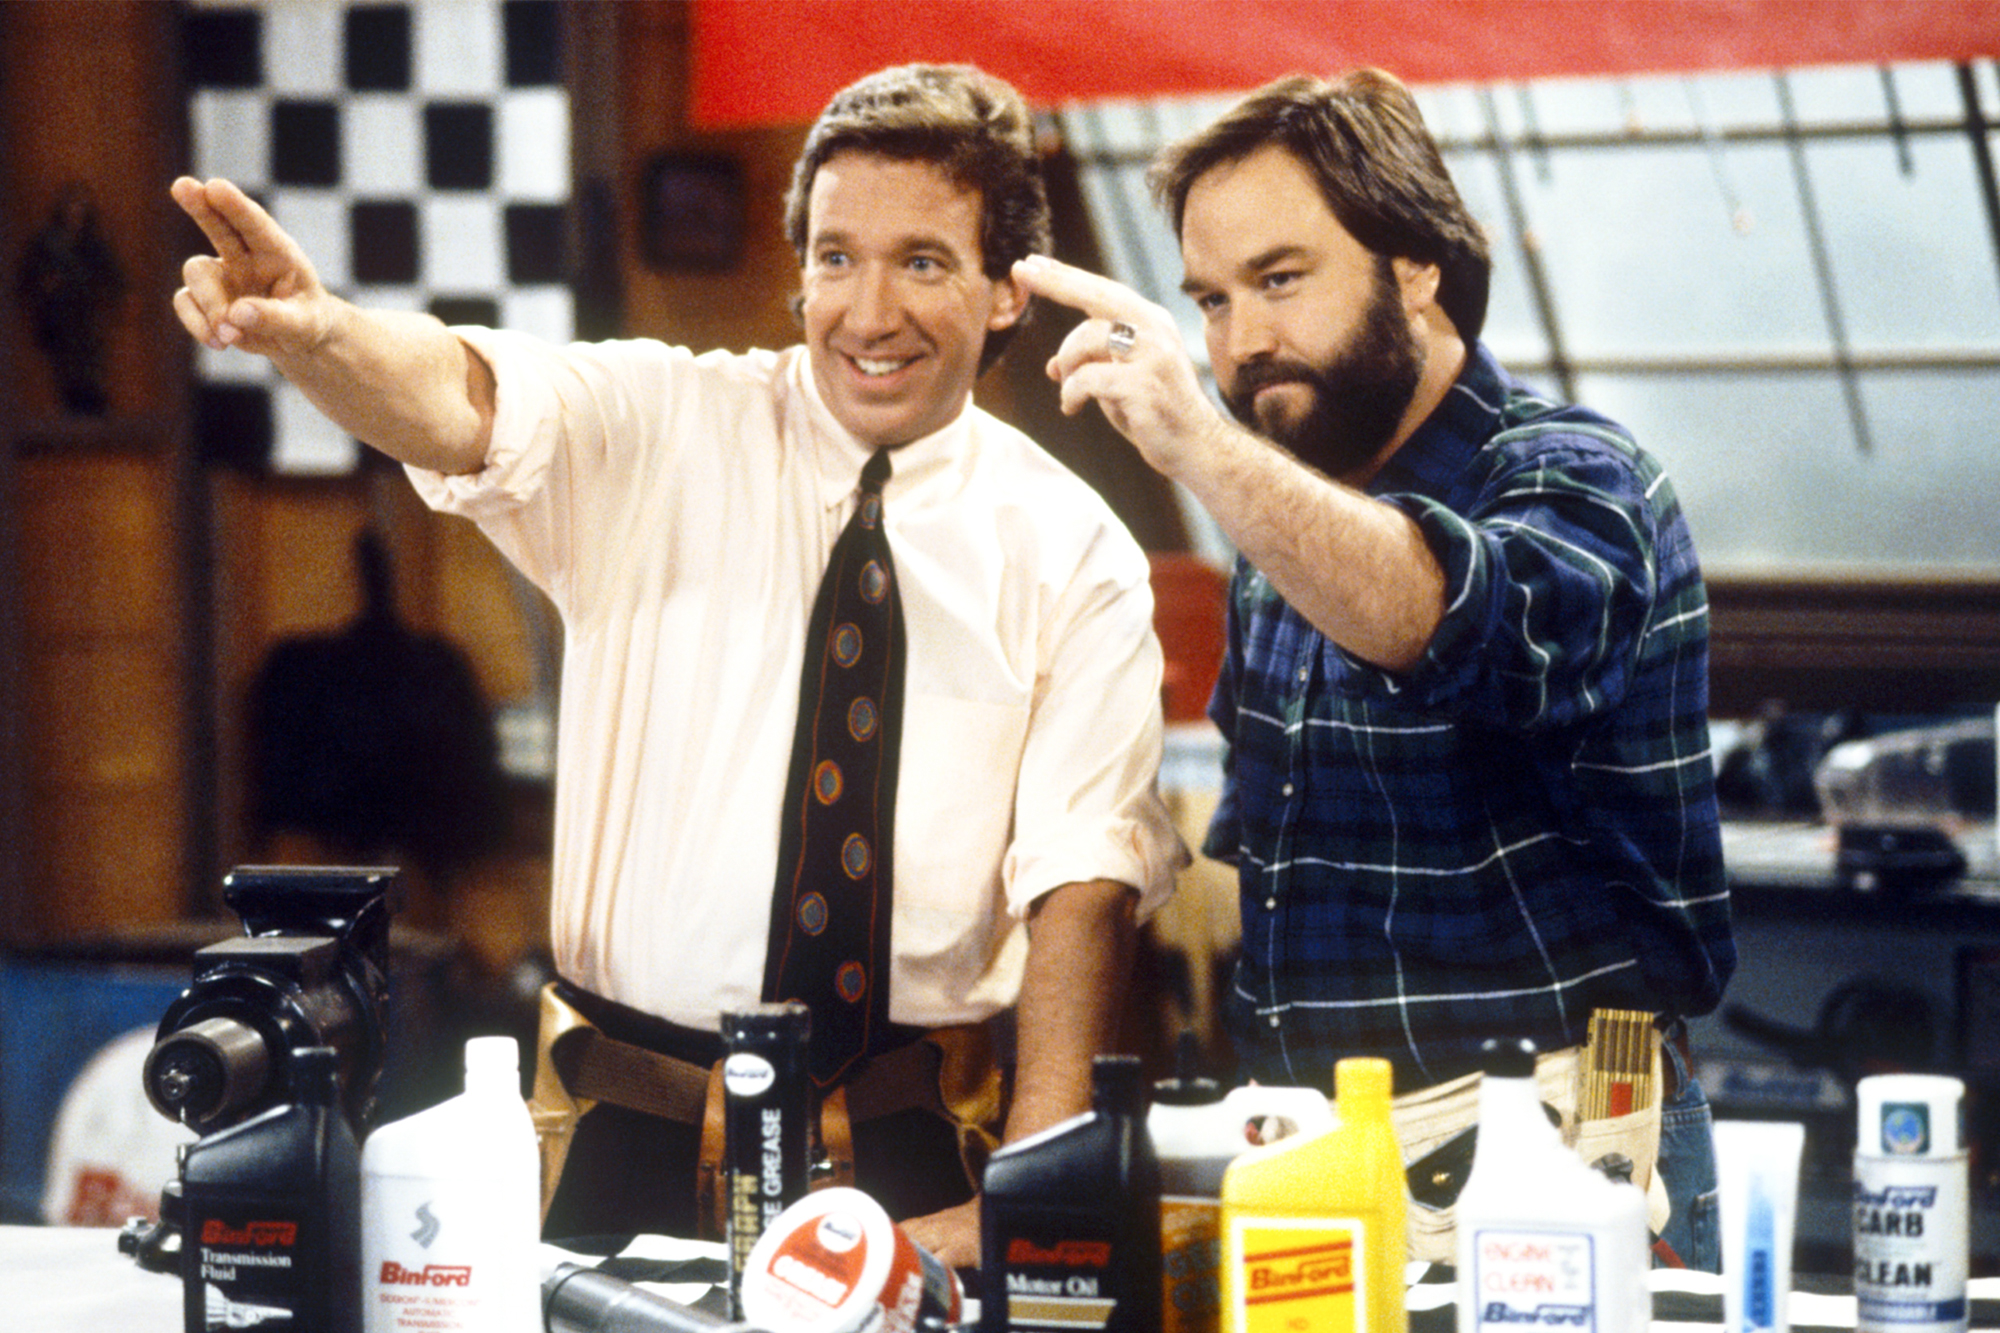 Home Improvement Stars Tim Allen Richard Karn To Reunite For Building Competition Ew Com